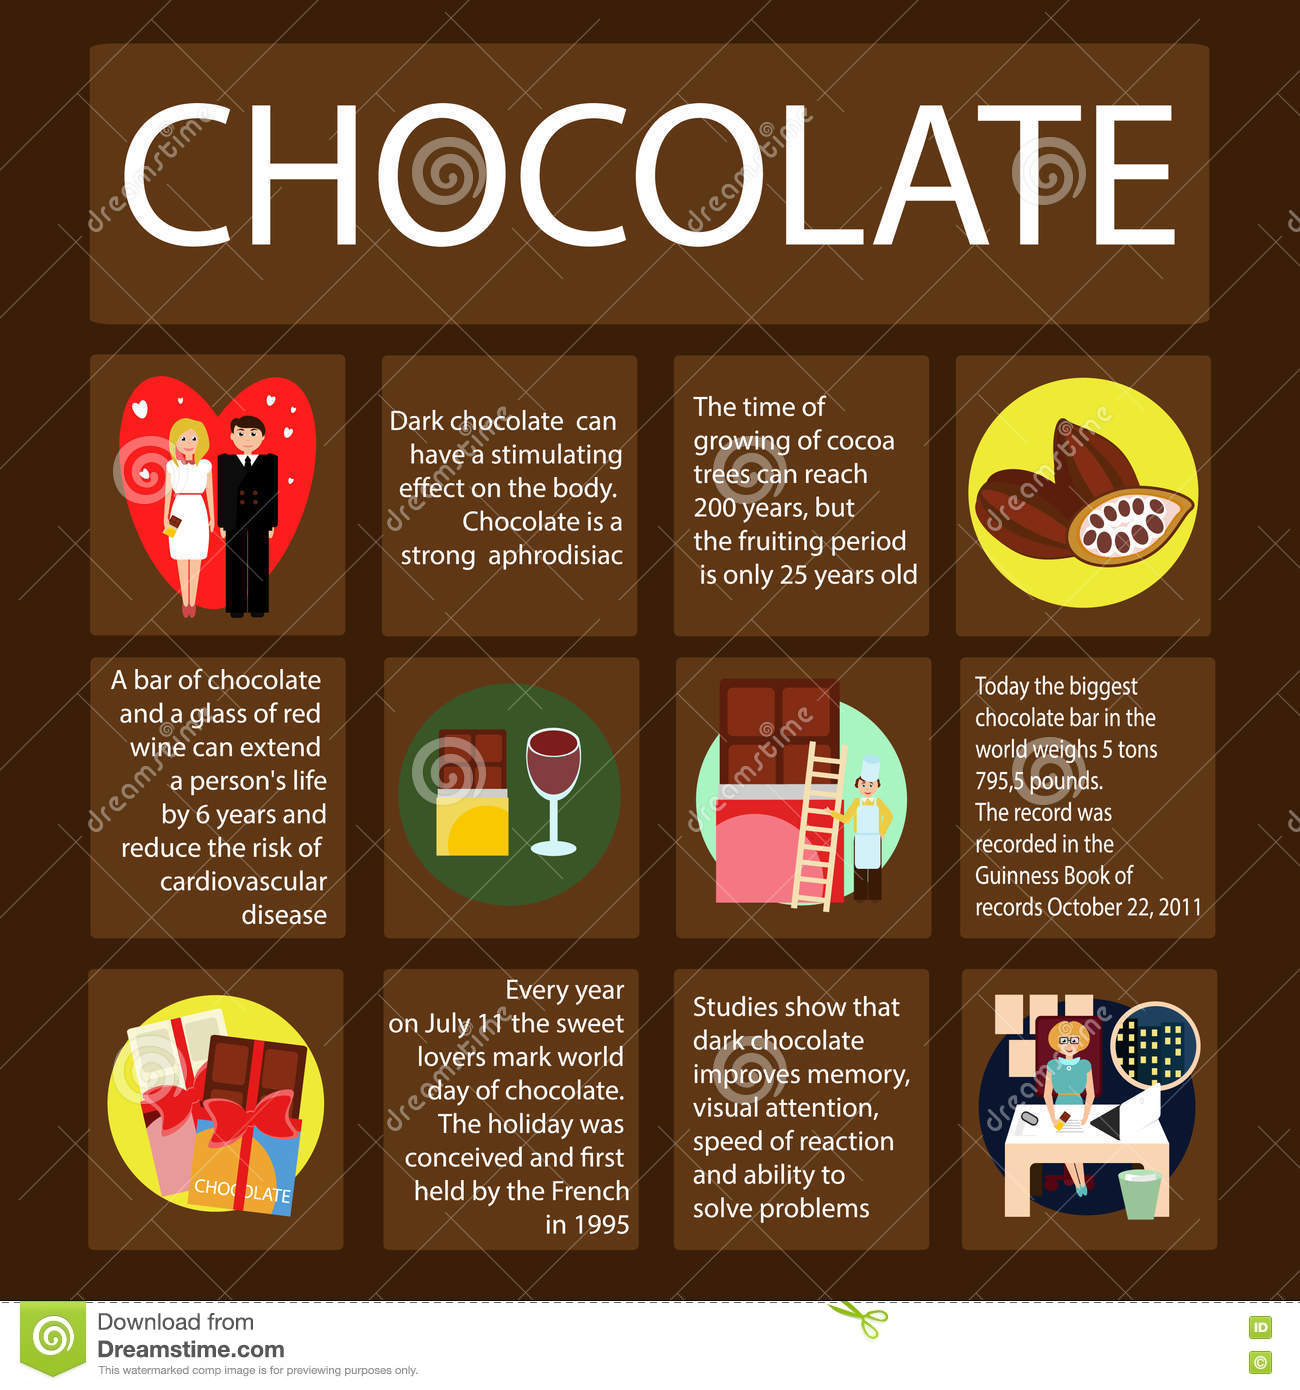 facts about chocolate From chocolate cravings to workout recovery, here's what you need to know about your favorite sweet treat.